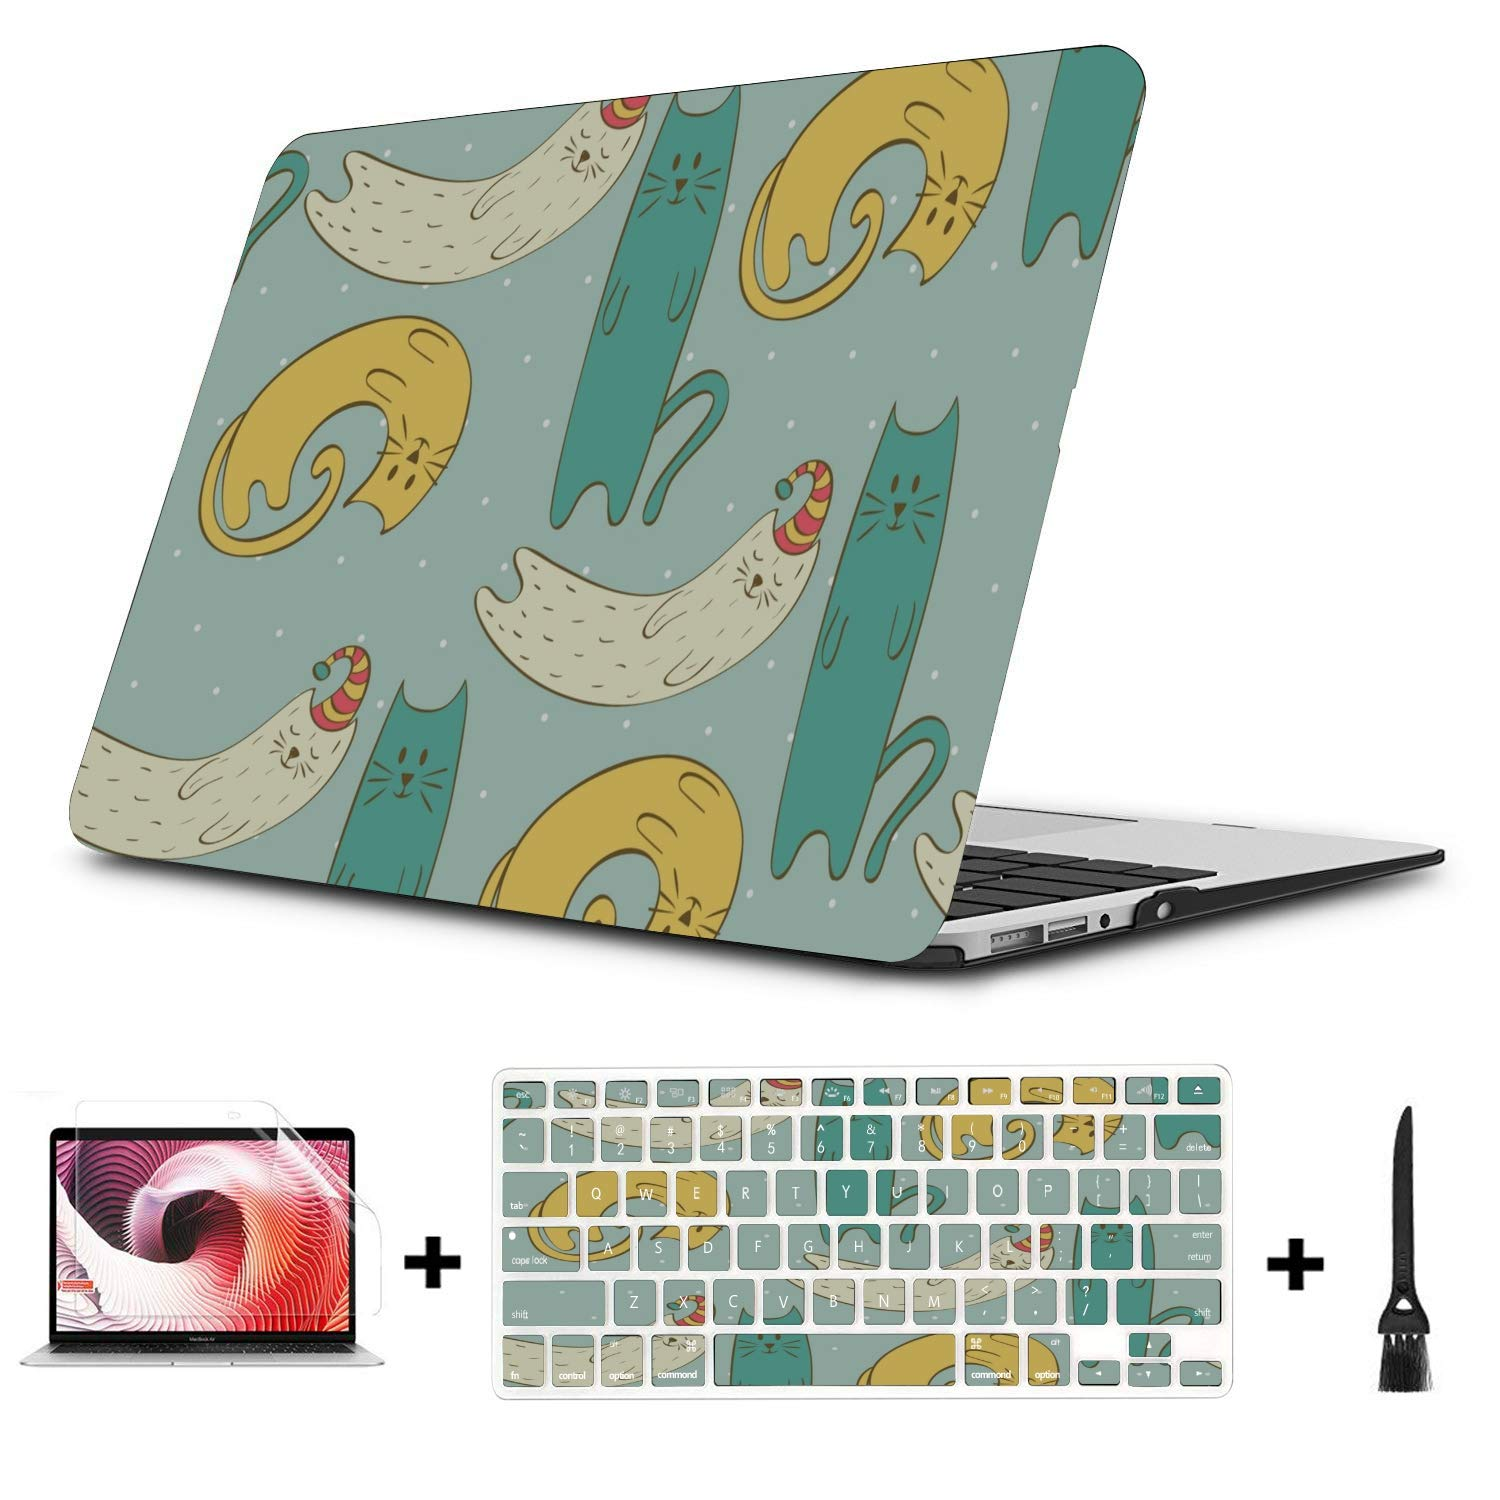 MacBook Cover 15 Inch Sophisticated Cute Cartoon Painting Plastic Hard Shell Compatible Mac Air 11 Pro 13 15 Mac Book Air Cover Protection for MacBook 2016-2019 Version